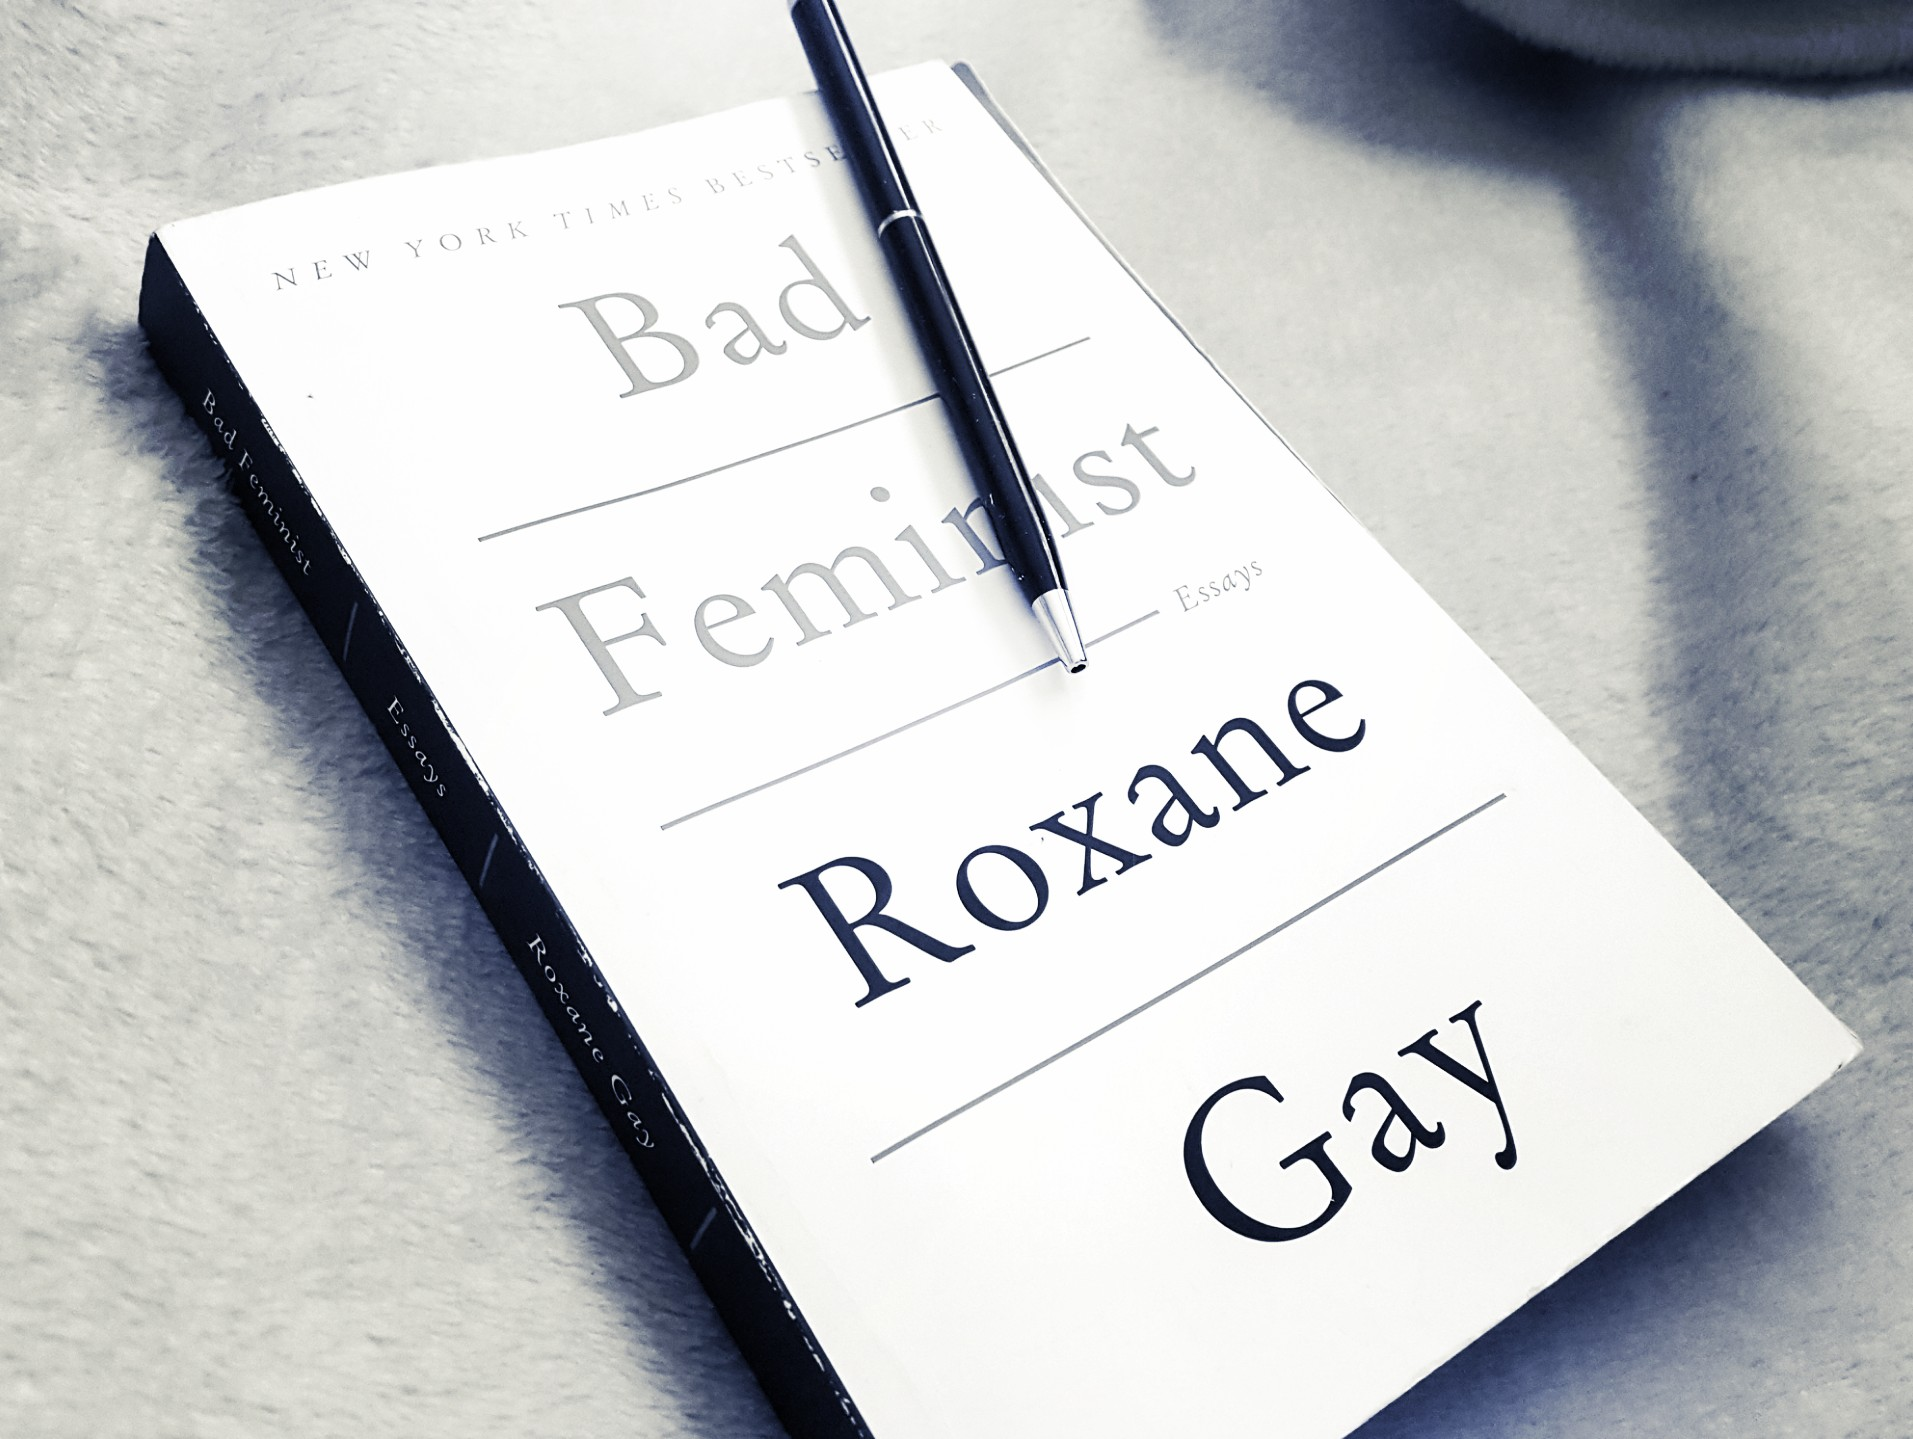 [Rezension] Roxanne Gay – Bad Feminist. Essays